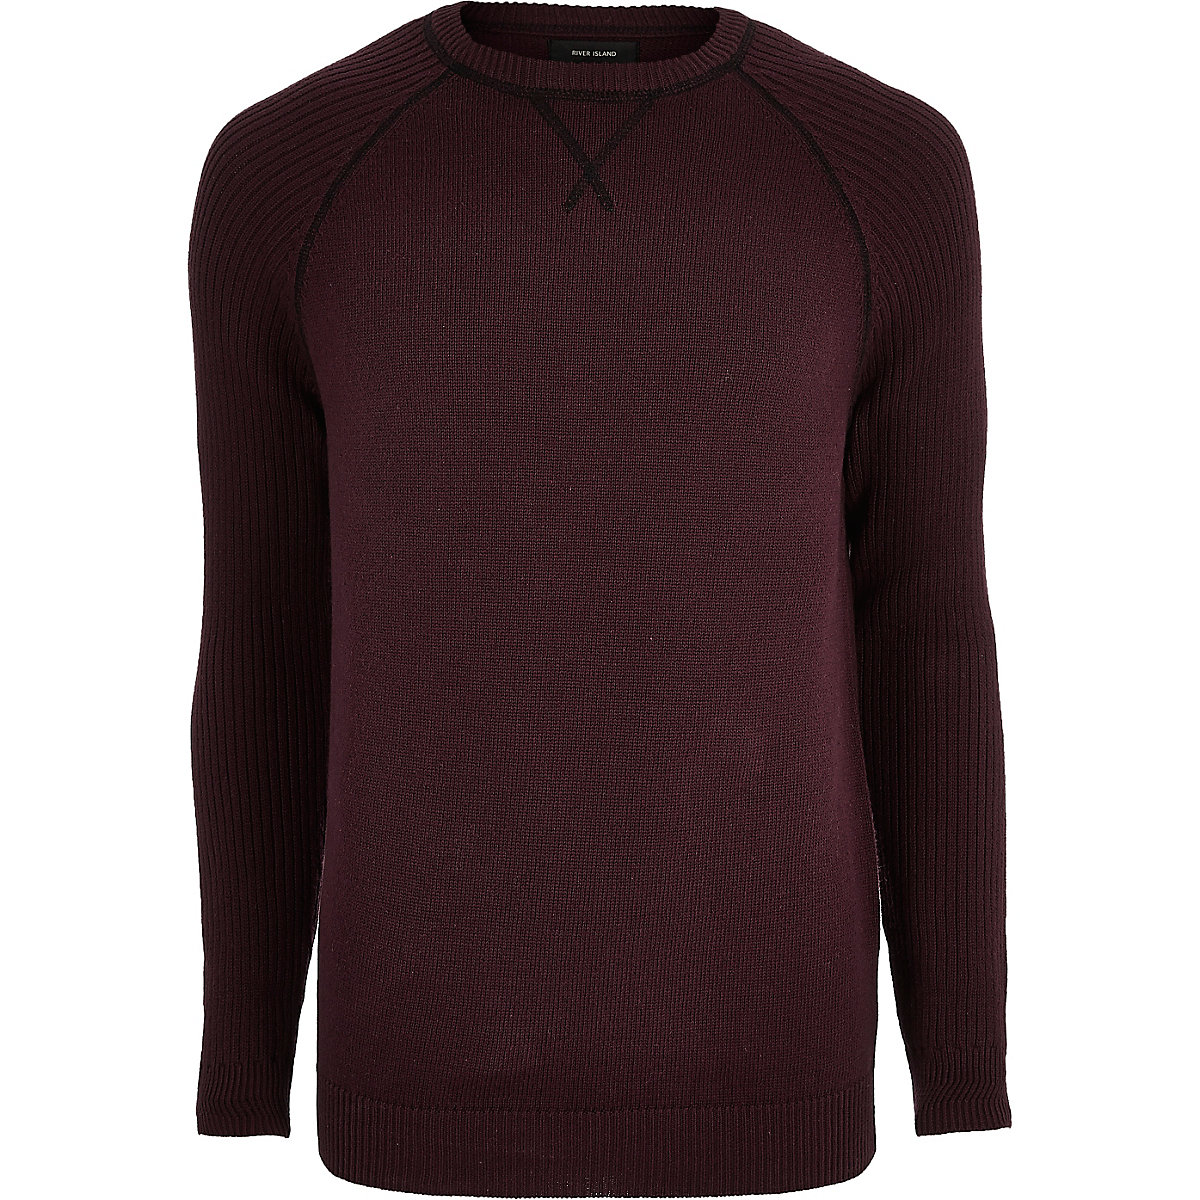 Burgundy knit raglan sleeve jumper